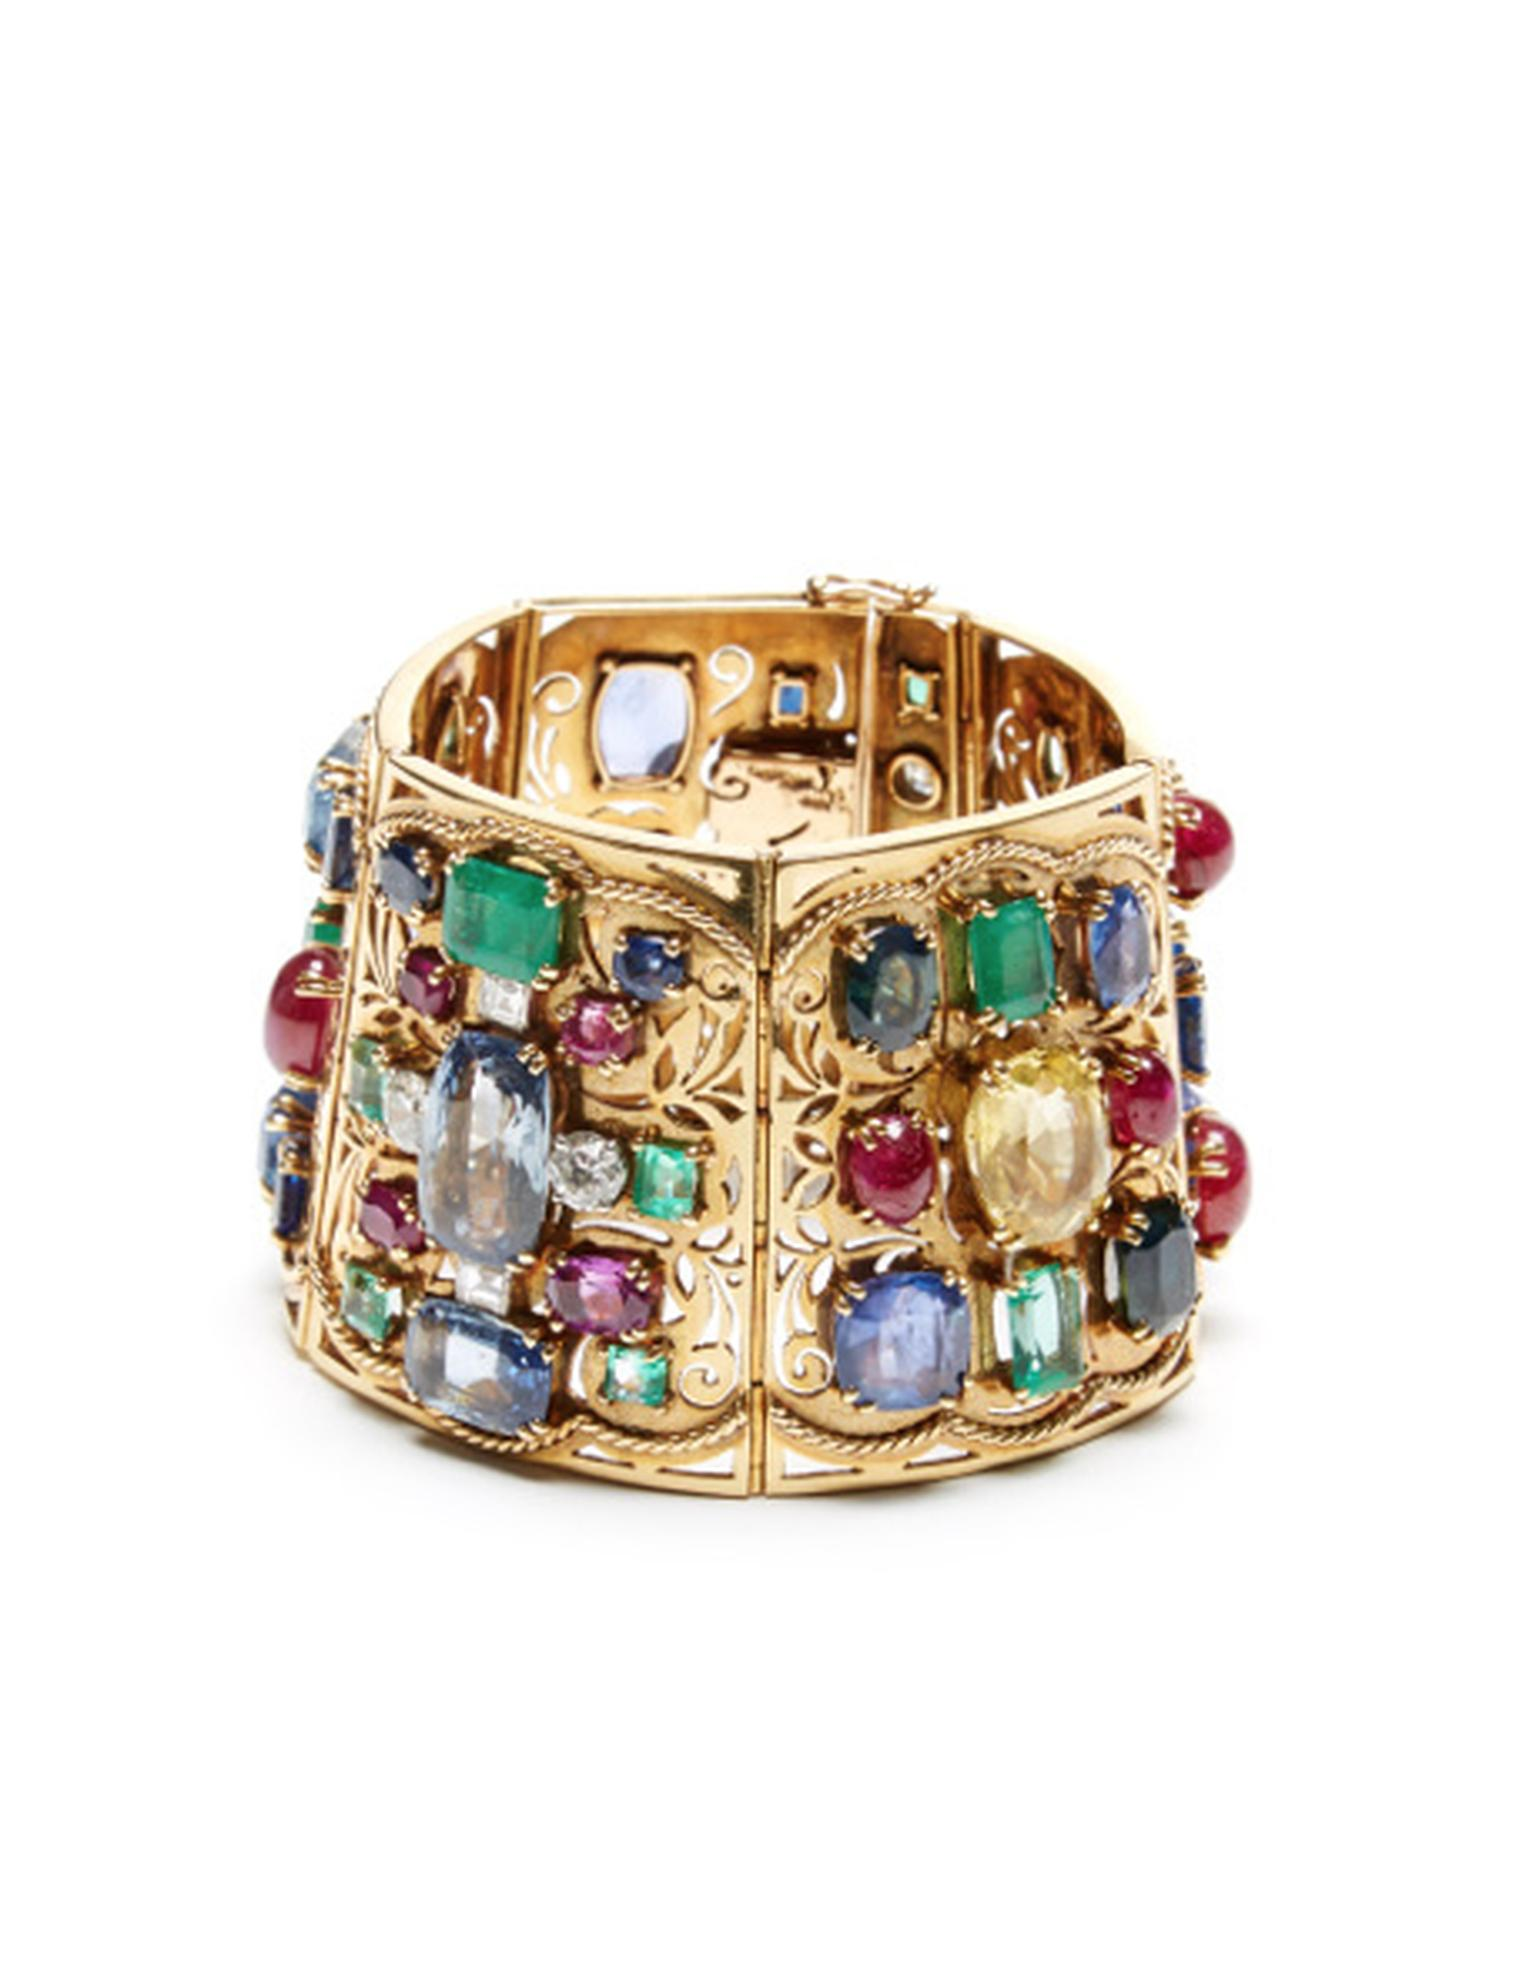 FD Gallery's Lucien Goubet bracelet from 1935 set with sapphires, rubies, emeralds and diamonds. $280,000 at Moda Operandi.